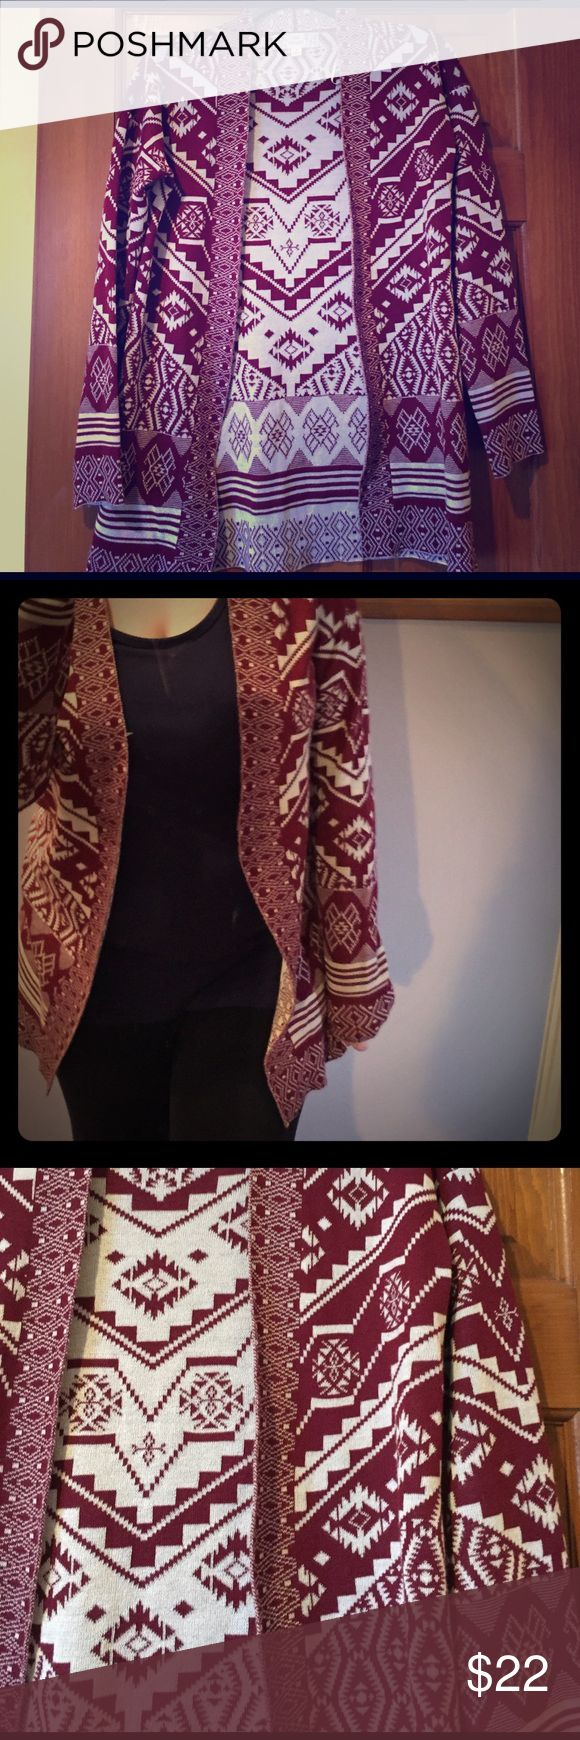 NWOT tribal print cardigan 🔆new without tag🔆 maroon and white tribal print opened cardigan.  60% cotton, 40% acrylic. ‼️I accept almost all offers‼️ Sweaters Cardigans